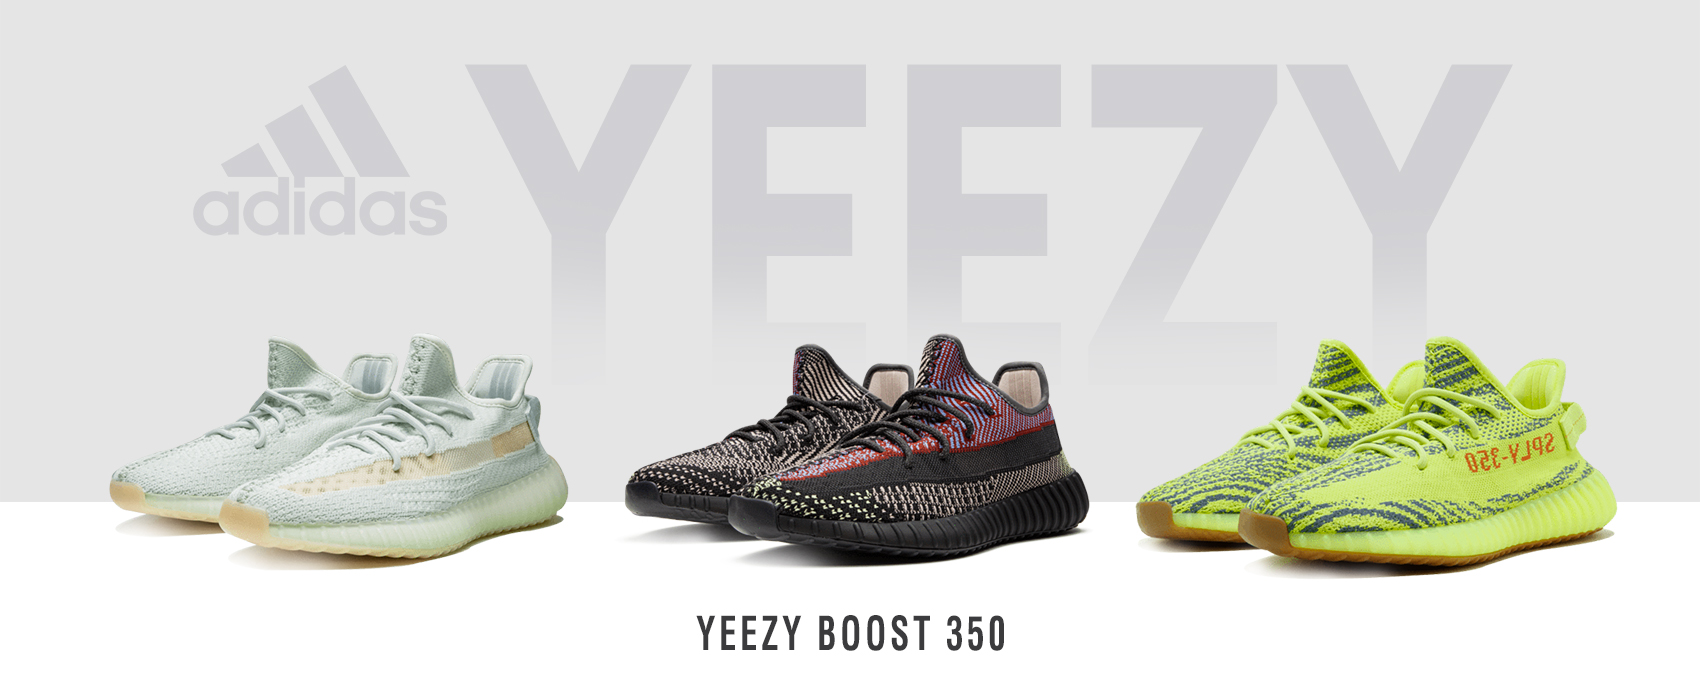 Collection de Sneakers Adidas Yeezy Boost by Kanye West